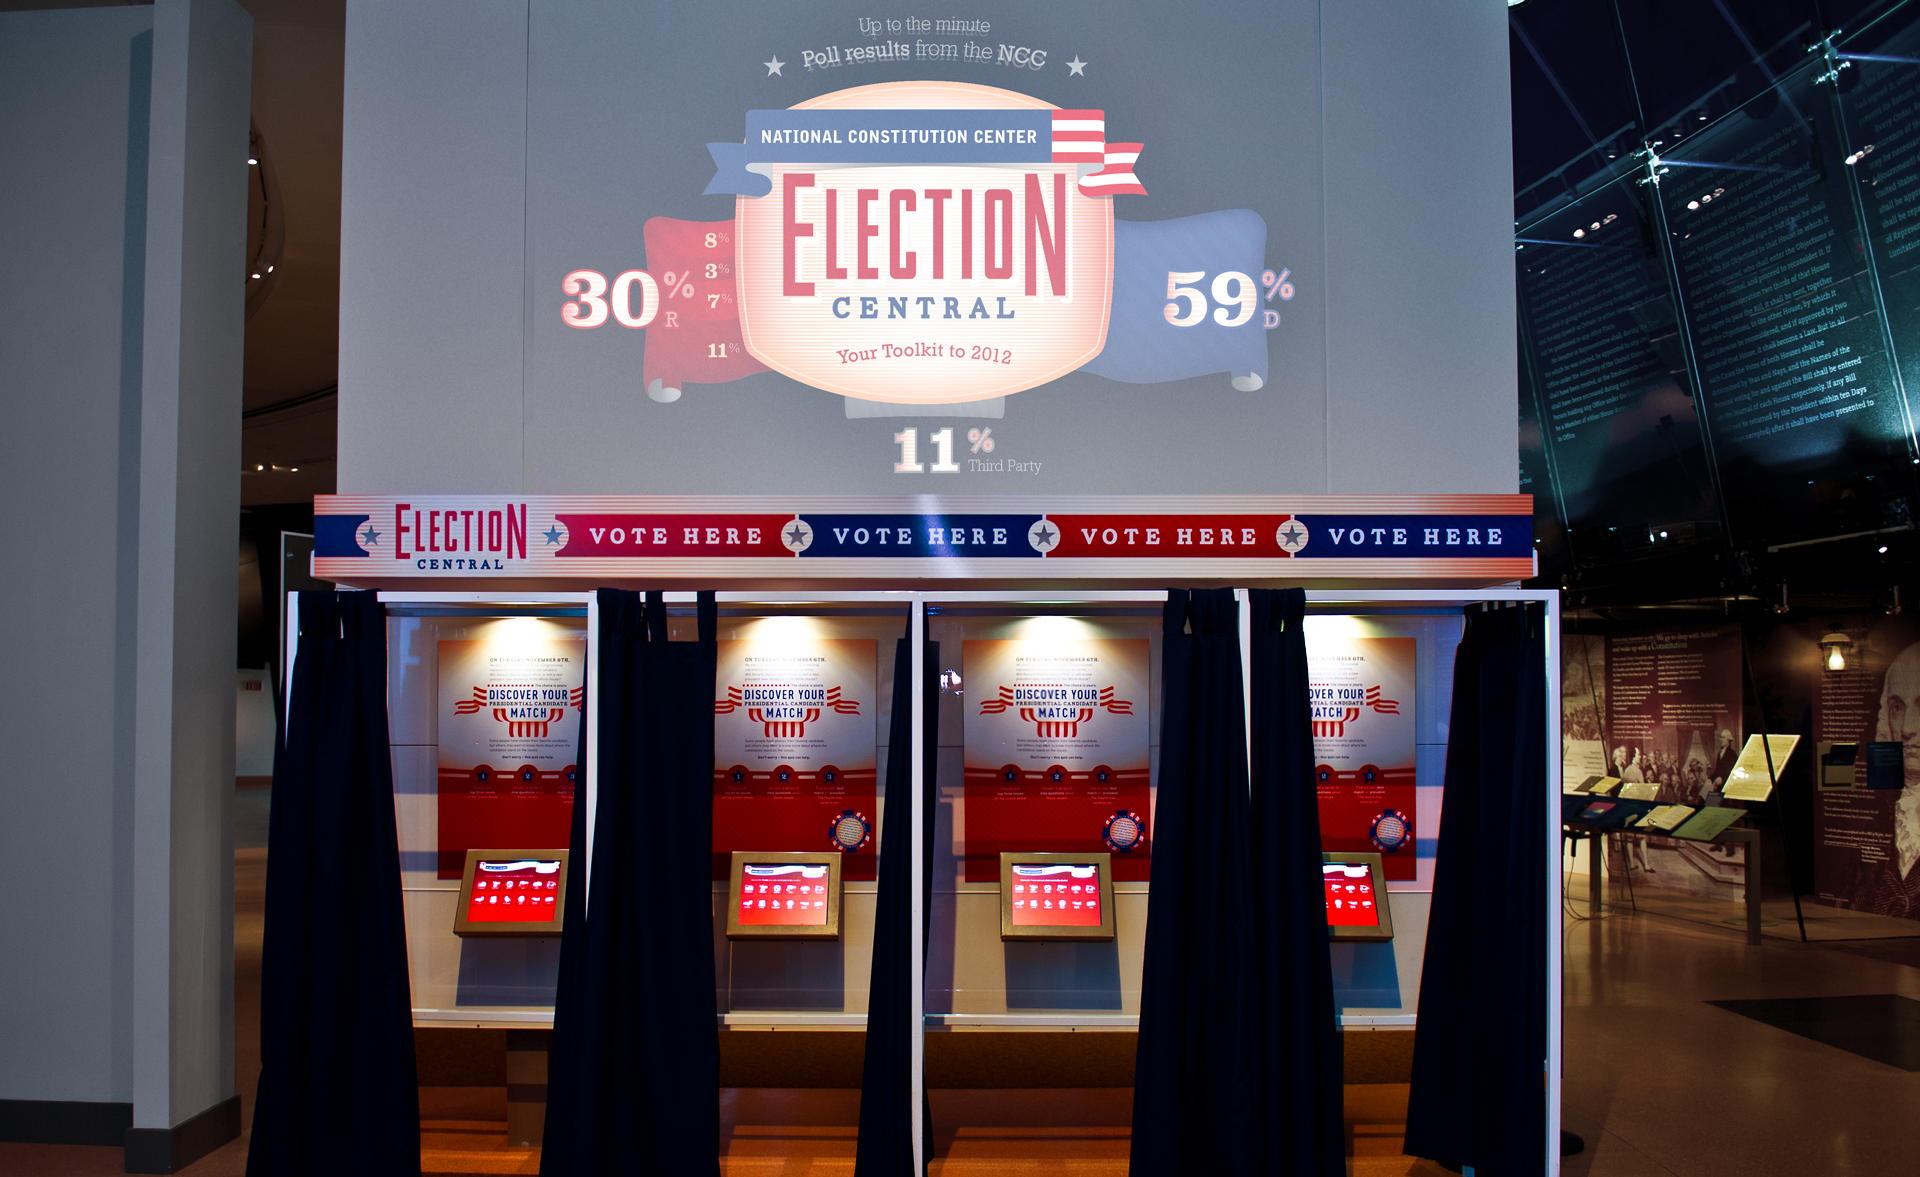 The center projection cycles through random match-ups and displays the results determined by actual votes cast by the Center's visitors..